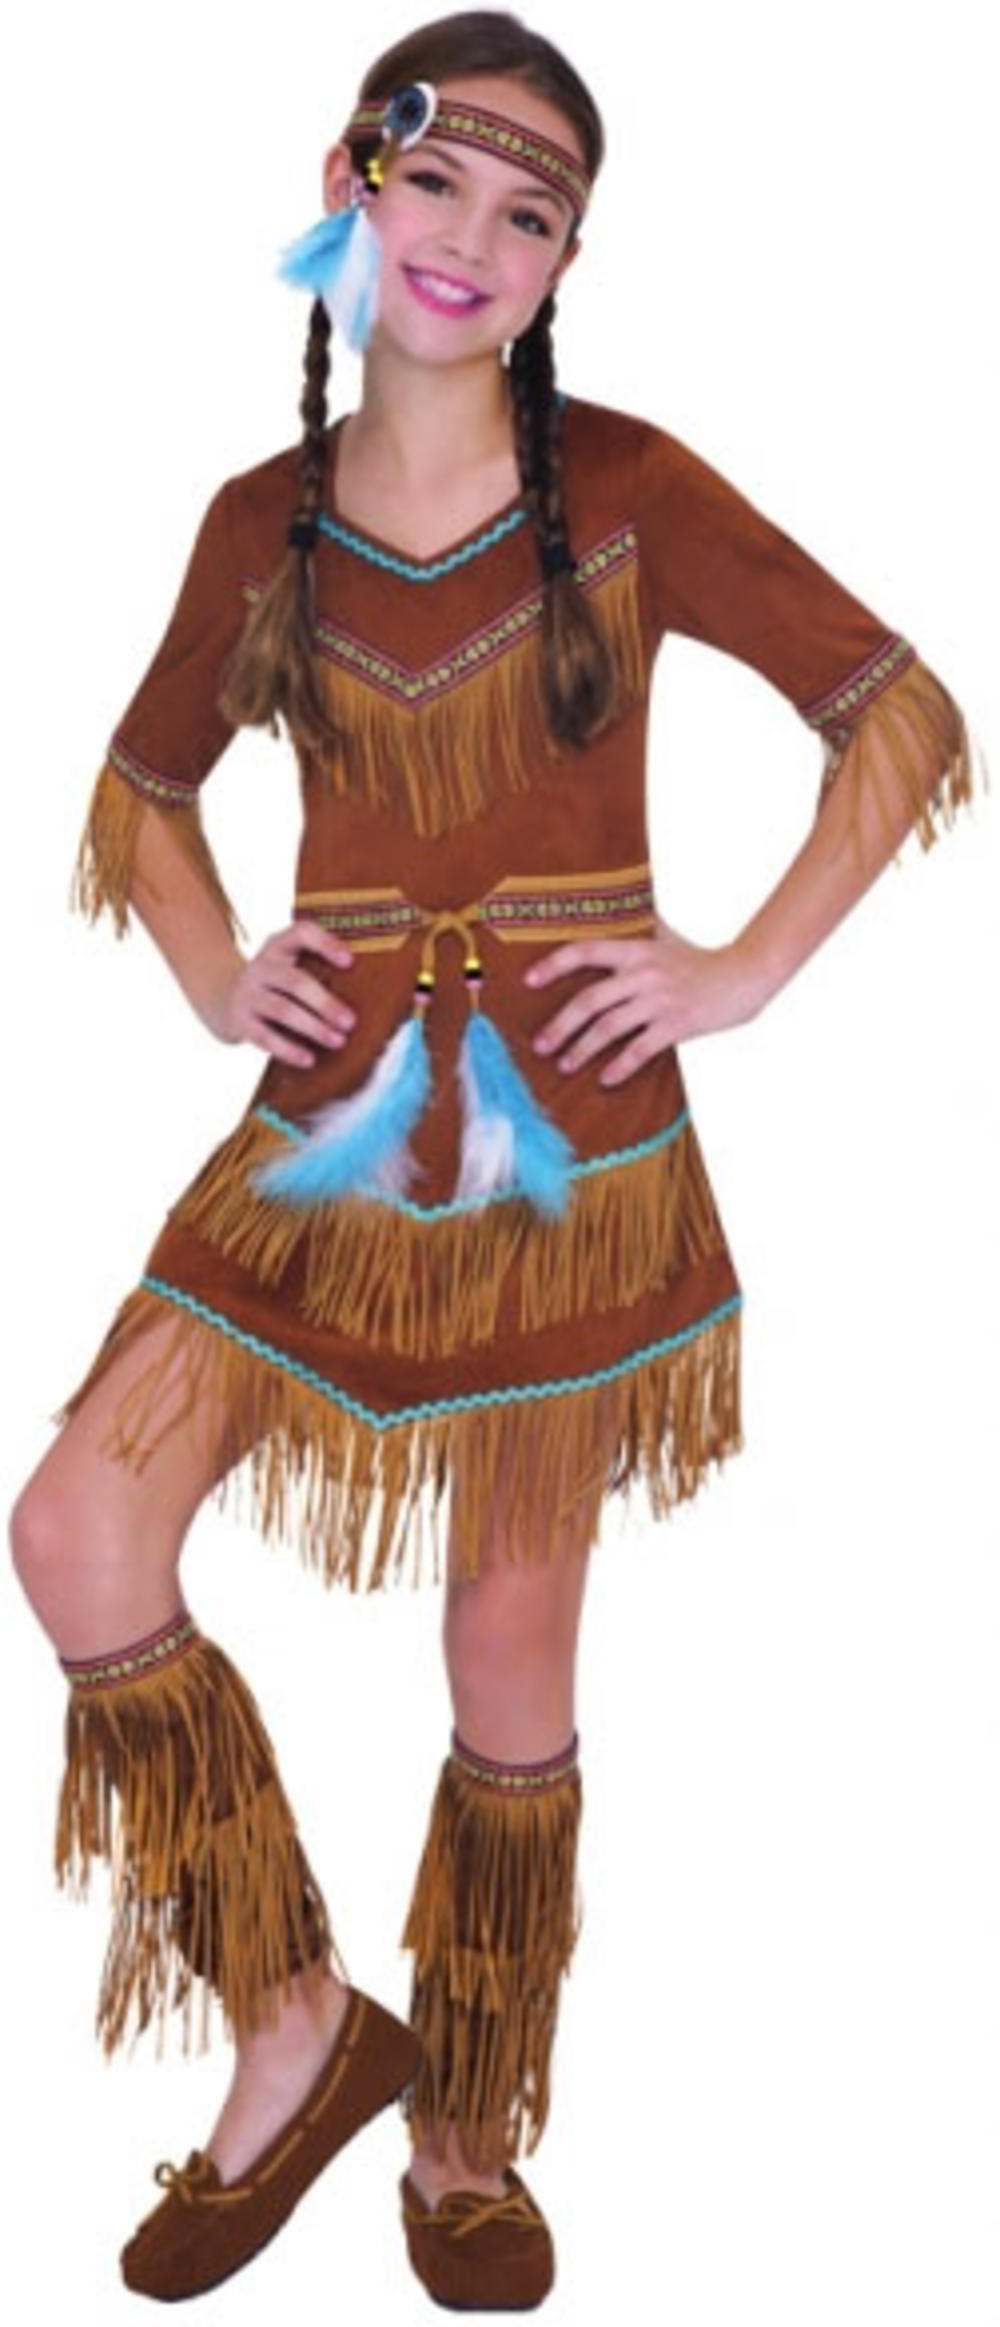 Indian Dream Cather Cutie Girls Fancy Dress Native American Kids Costume Outfit